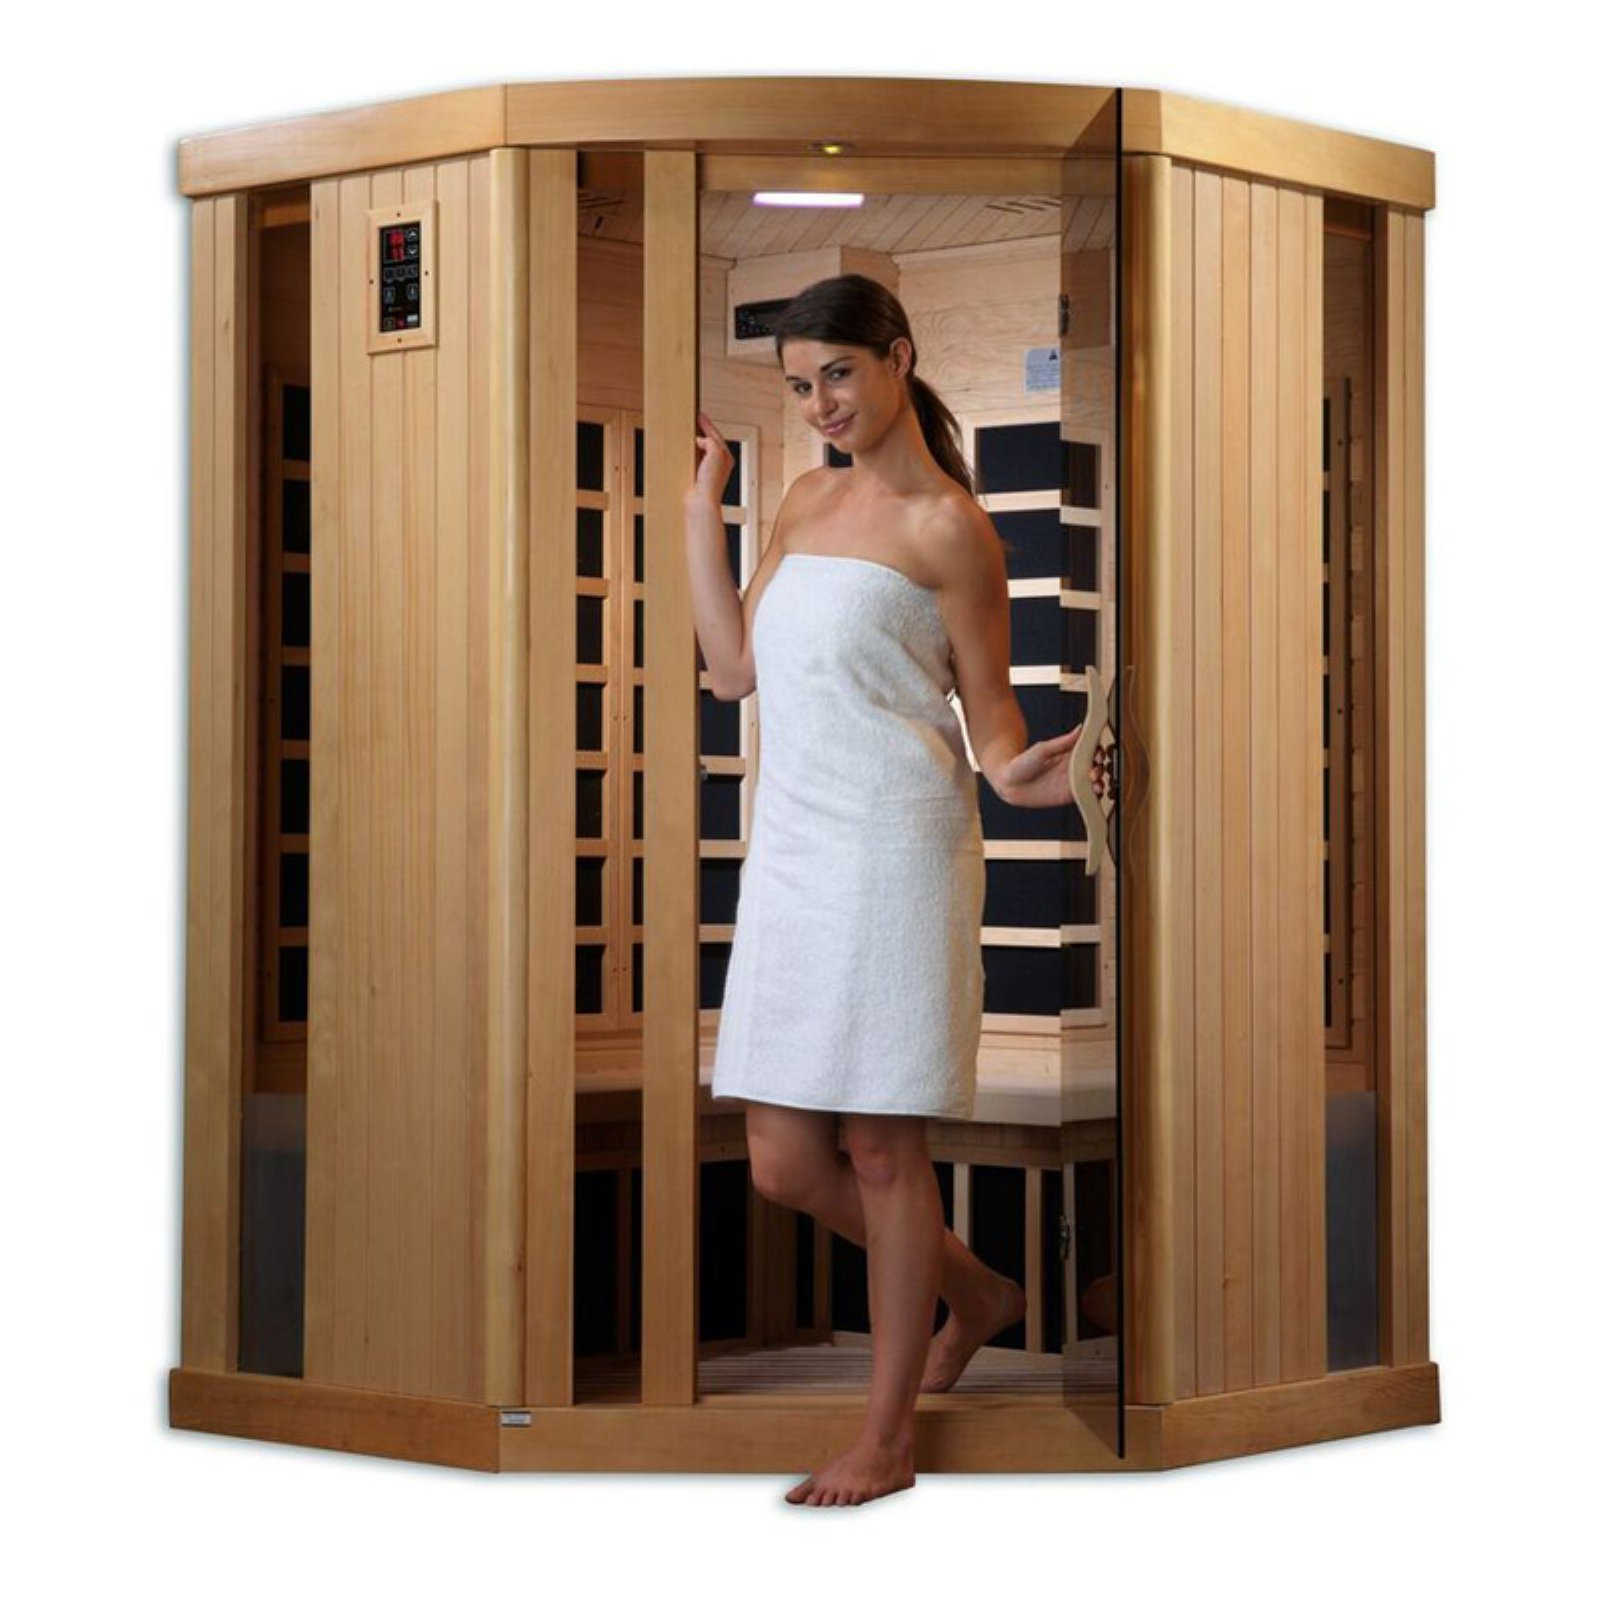 Golden Designs Inc. 3 Person Corner Infrared Sauna by Gold Design Saunas